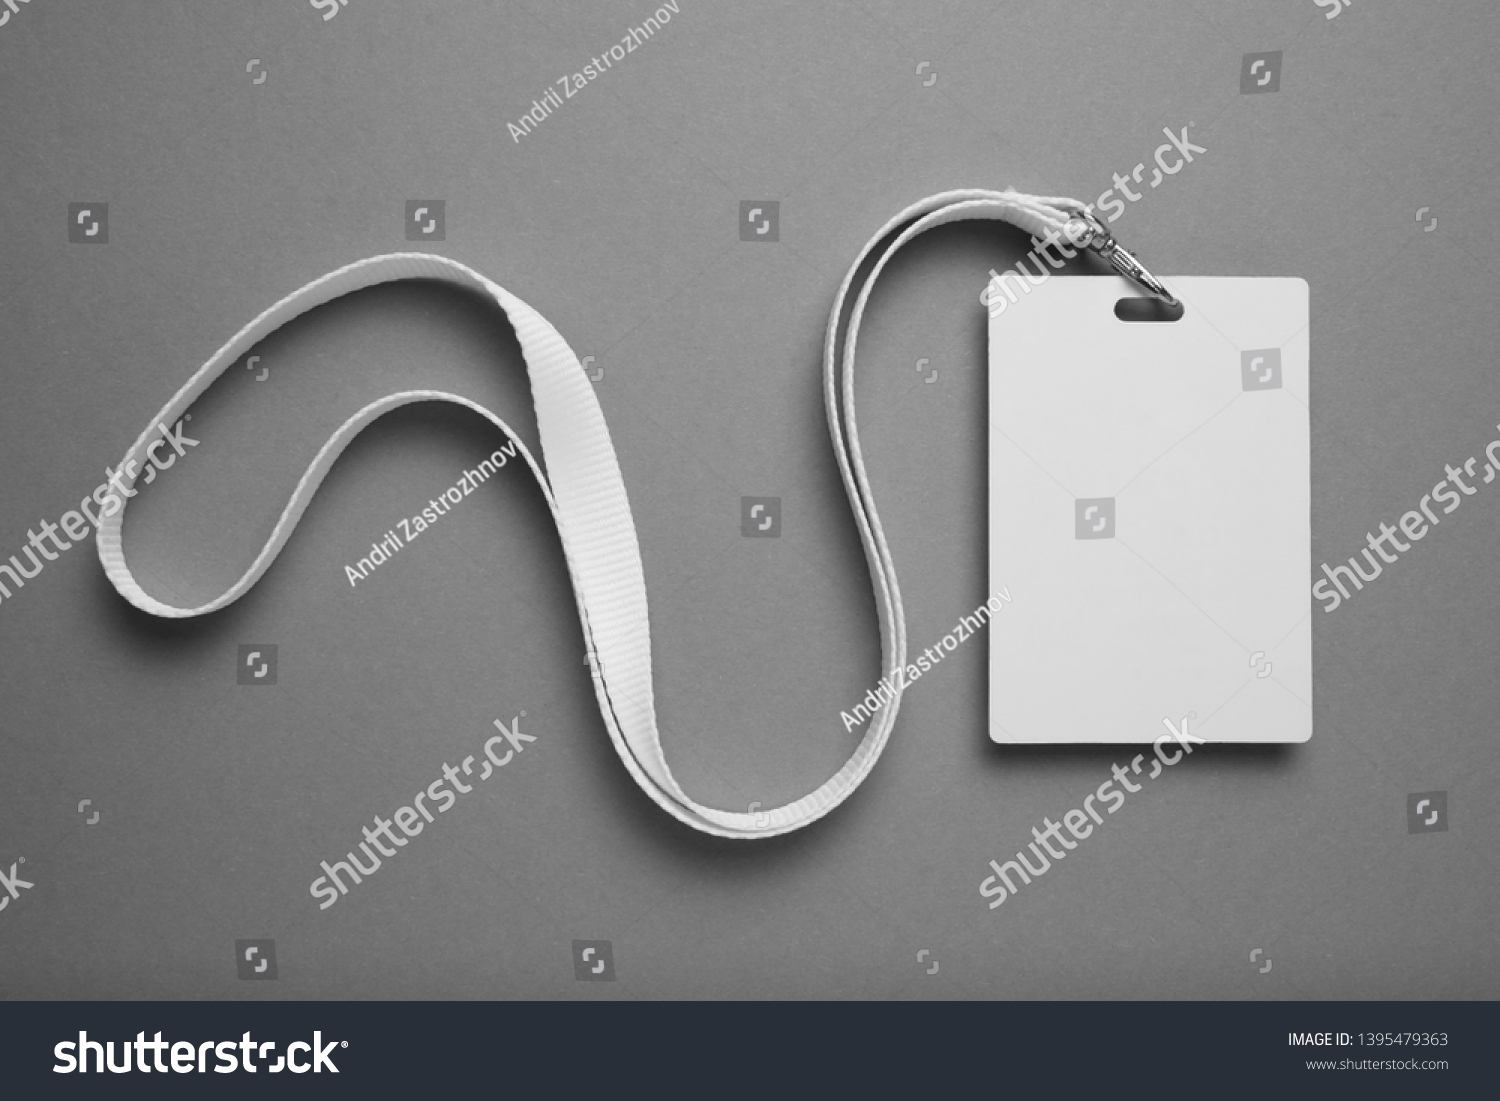 Empty layout layout on grey background. Common blank label name tag hanging on neck with thread. #1395479363